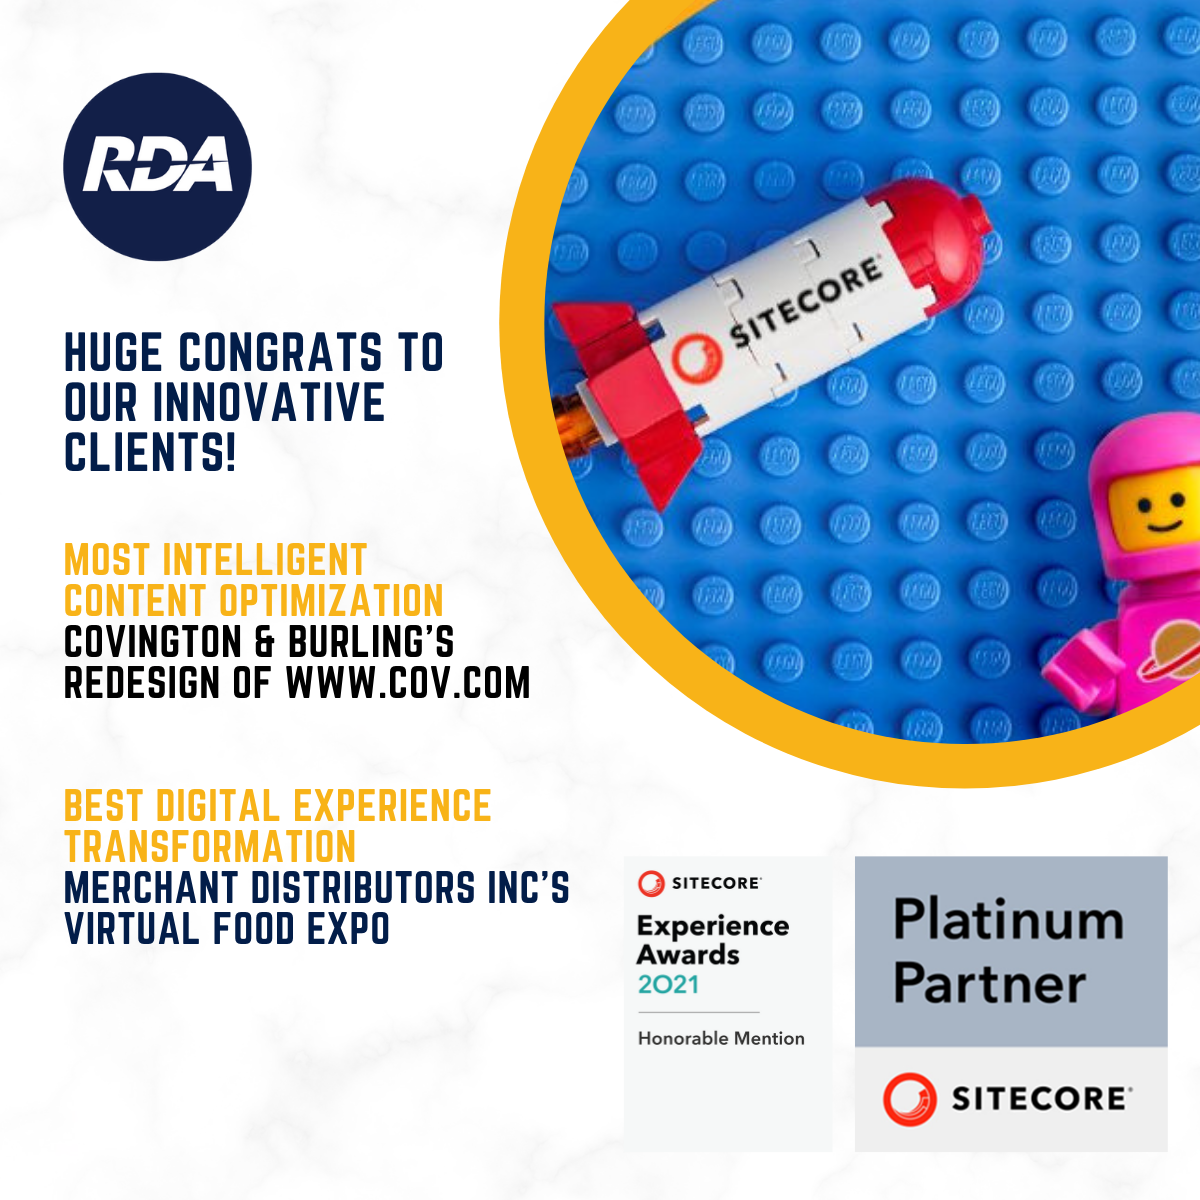 Two Innovative RDA Clients Recognized In 2021 Sitecore Experience Honorable Mentions